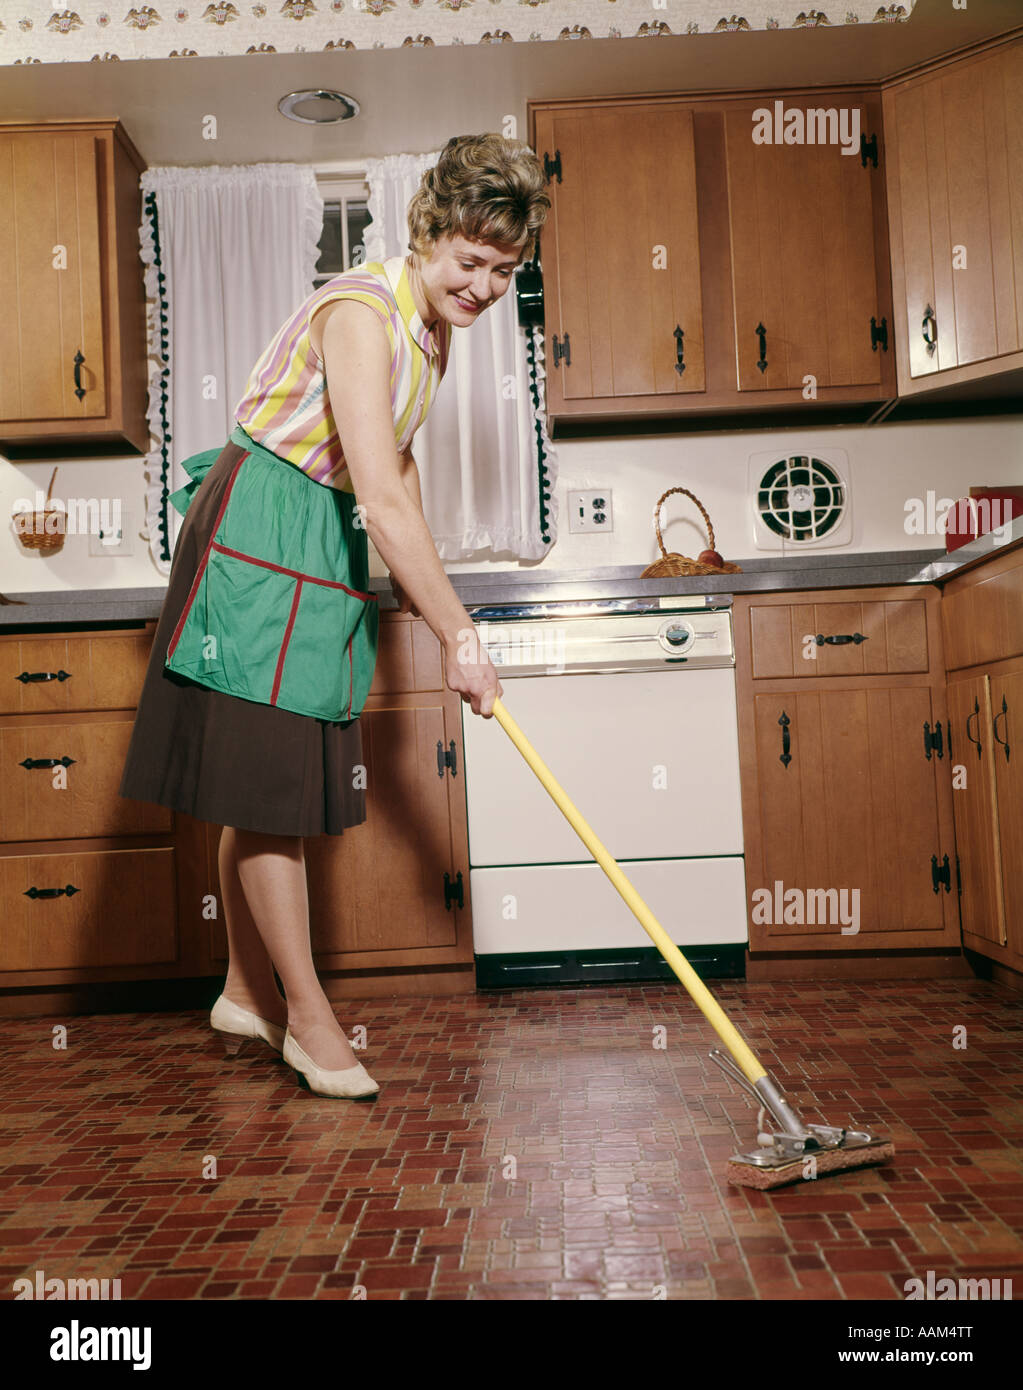 1960s WOMAN IN APRON CLEANING KITCHEN FLOOR WITH SPONGE MOP